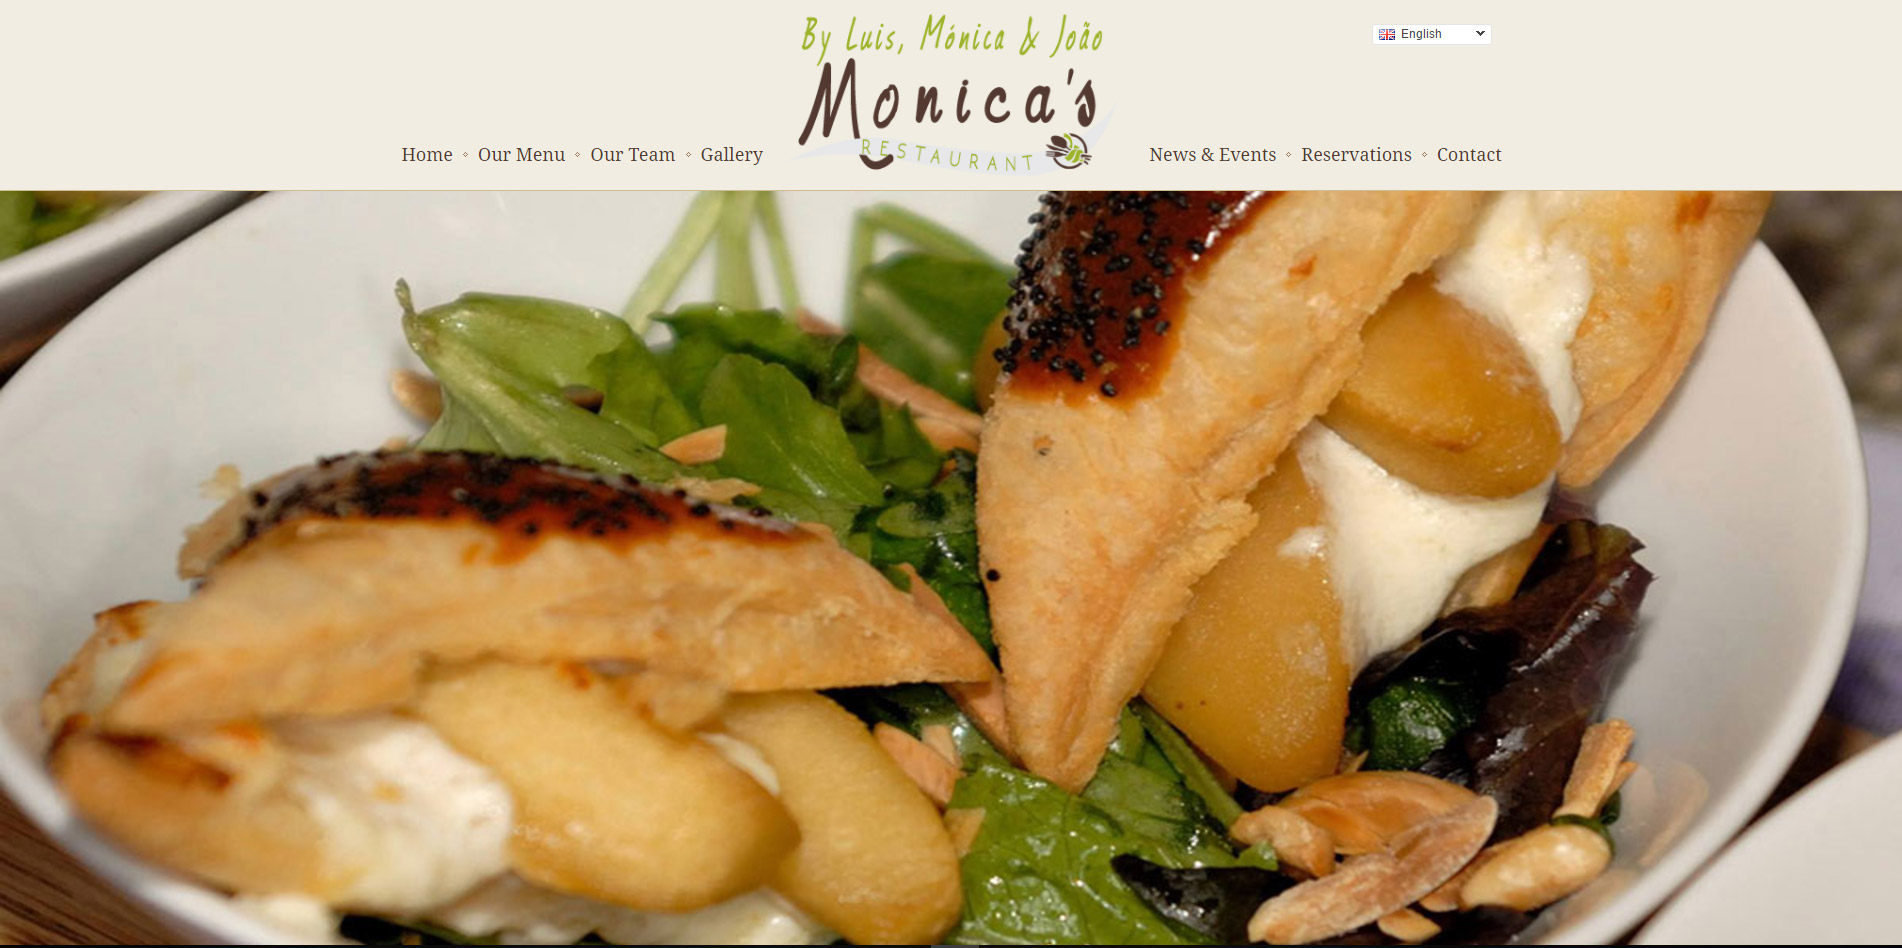 home page websitedesign for restaurant located in the Algarve